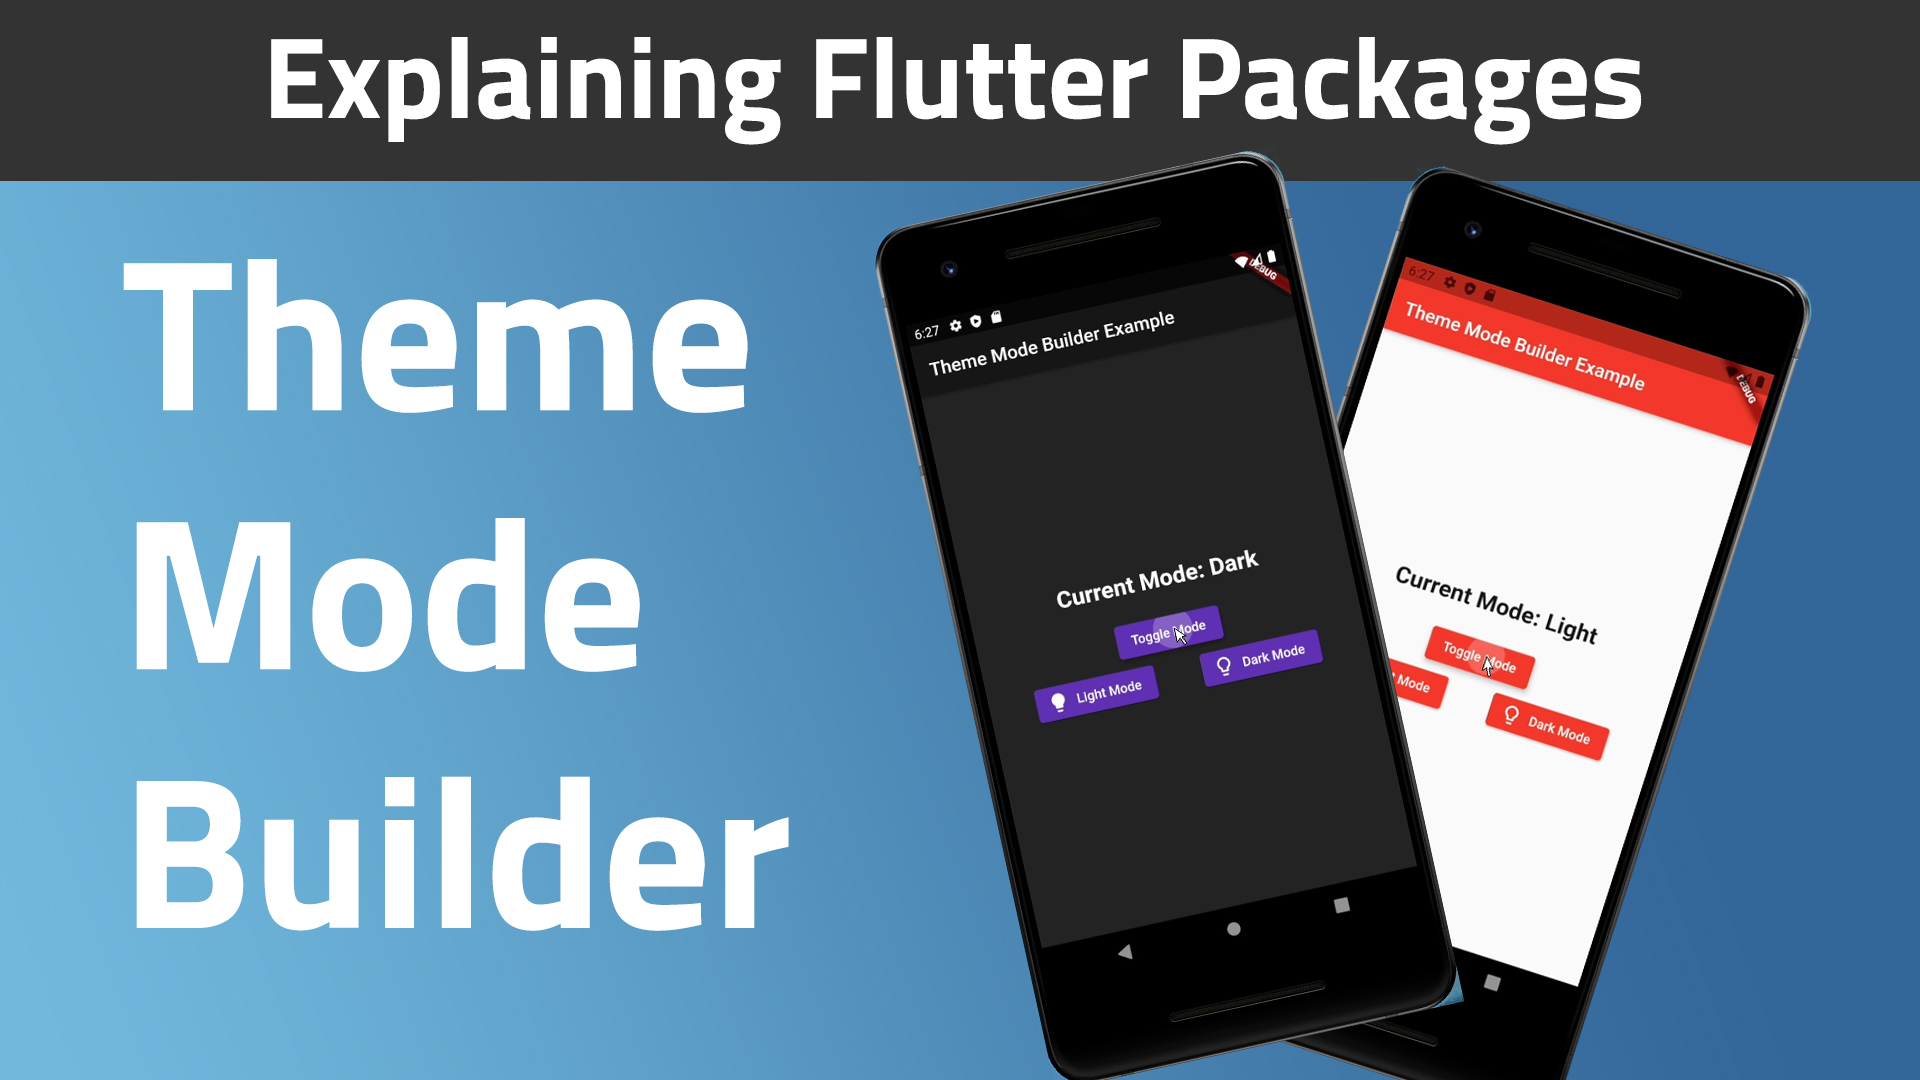 Theme Mode Builder | Explaining Flutter Packages